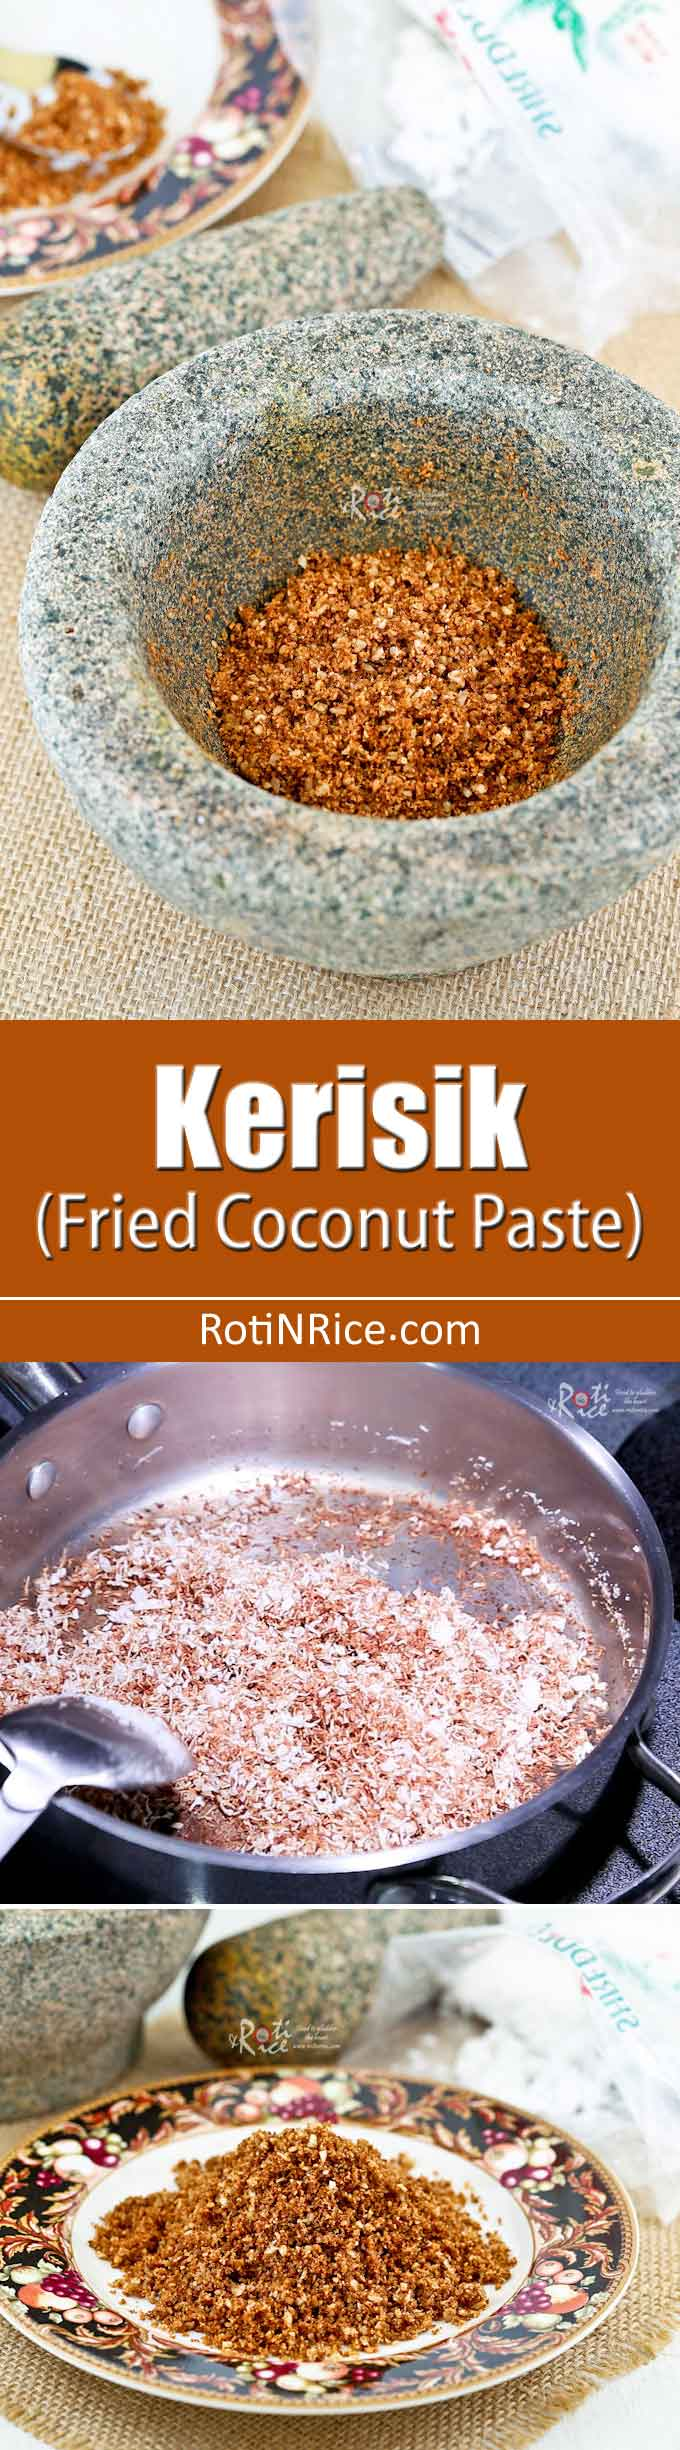 Learn how to make Kerisik (Fried Coconut Paste) in this video tutorial. It helps thicken sauces and provides flavor and texture to a dish. | RotiNRice.com